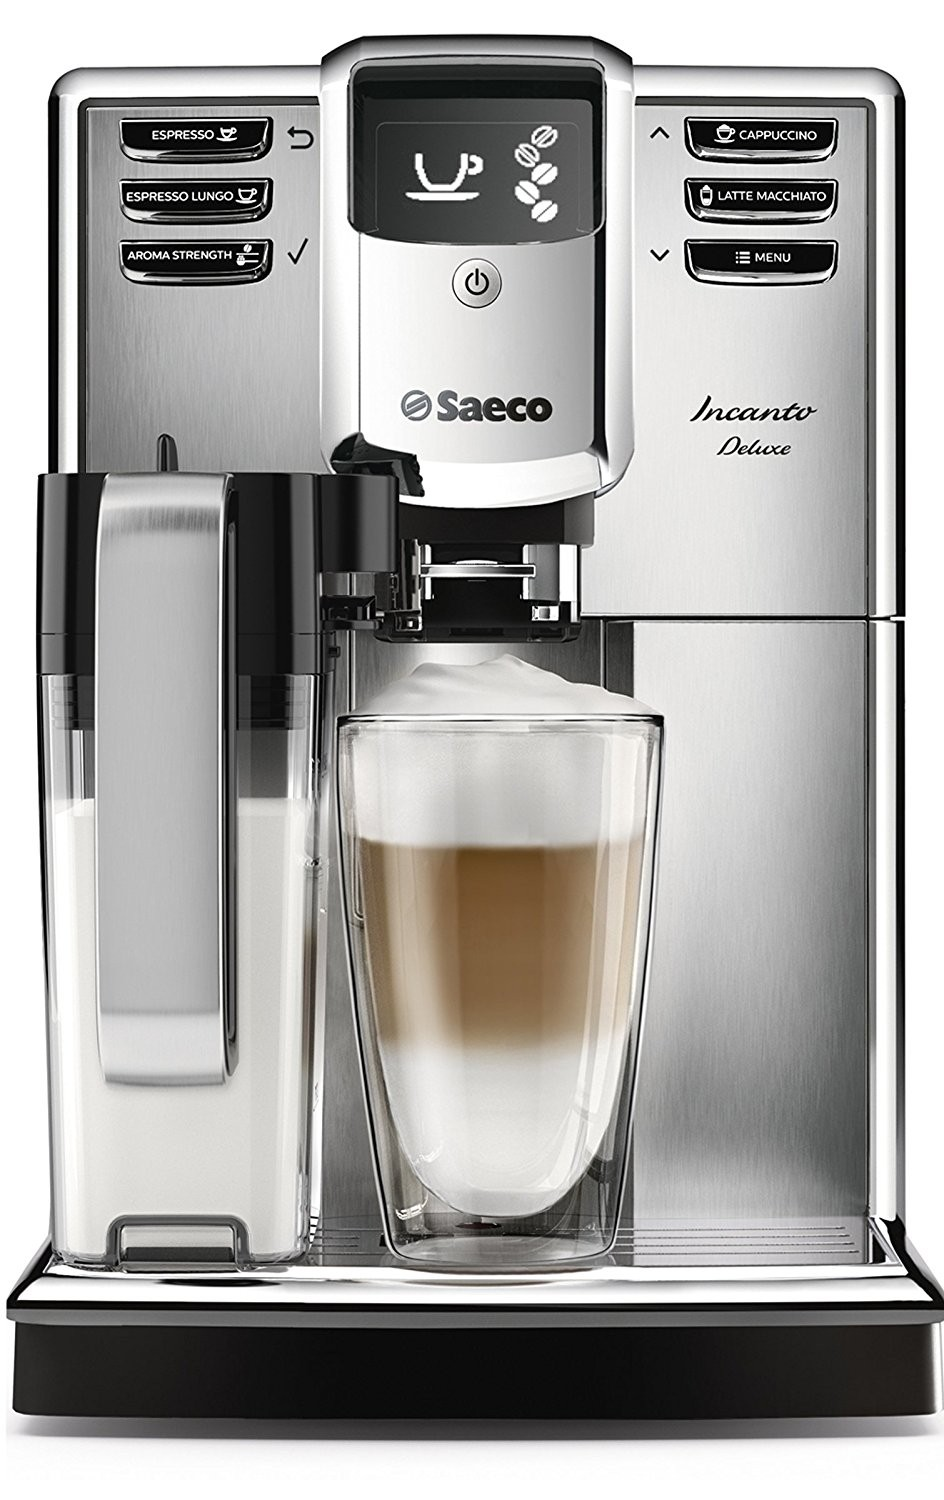 Philips Saeco Hd8921 01 Incanto Deluxe Coffee Machine